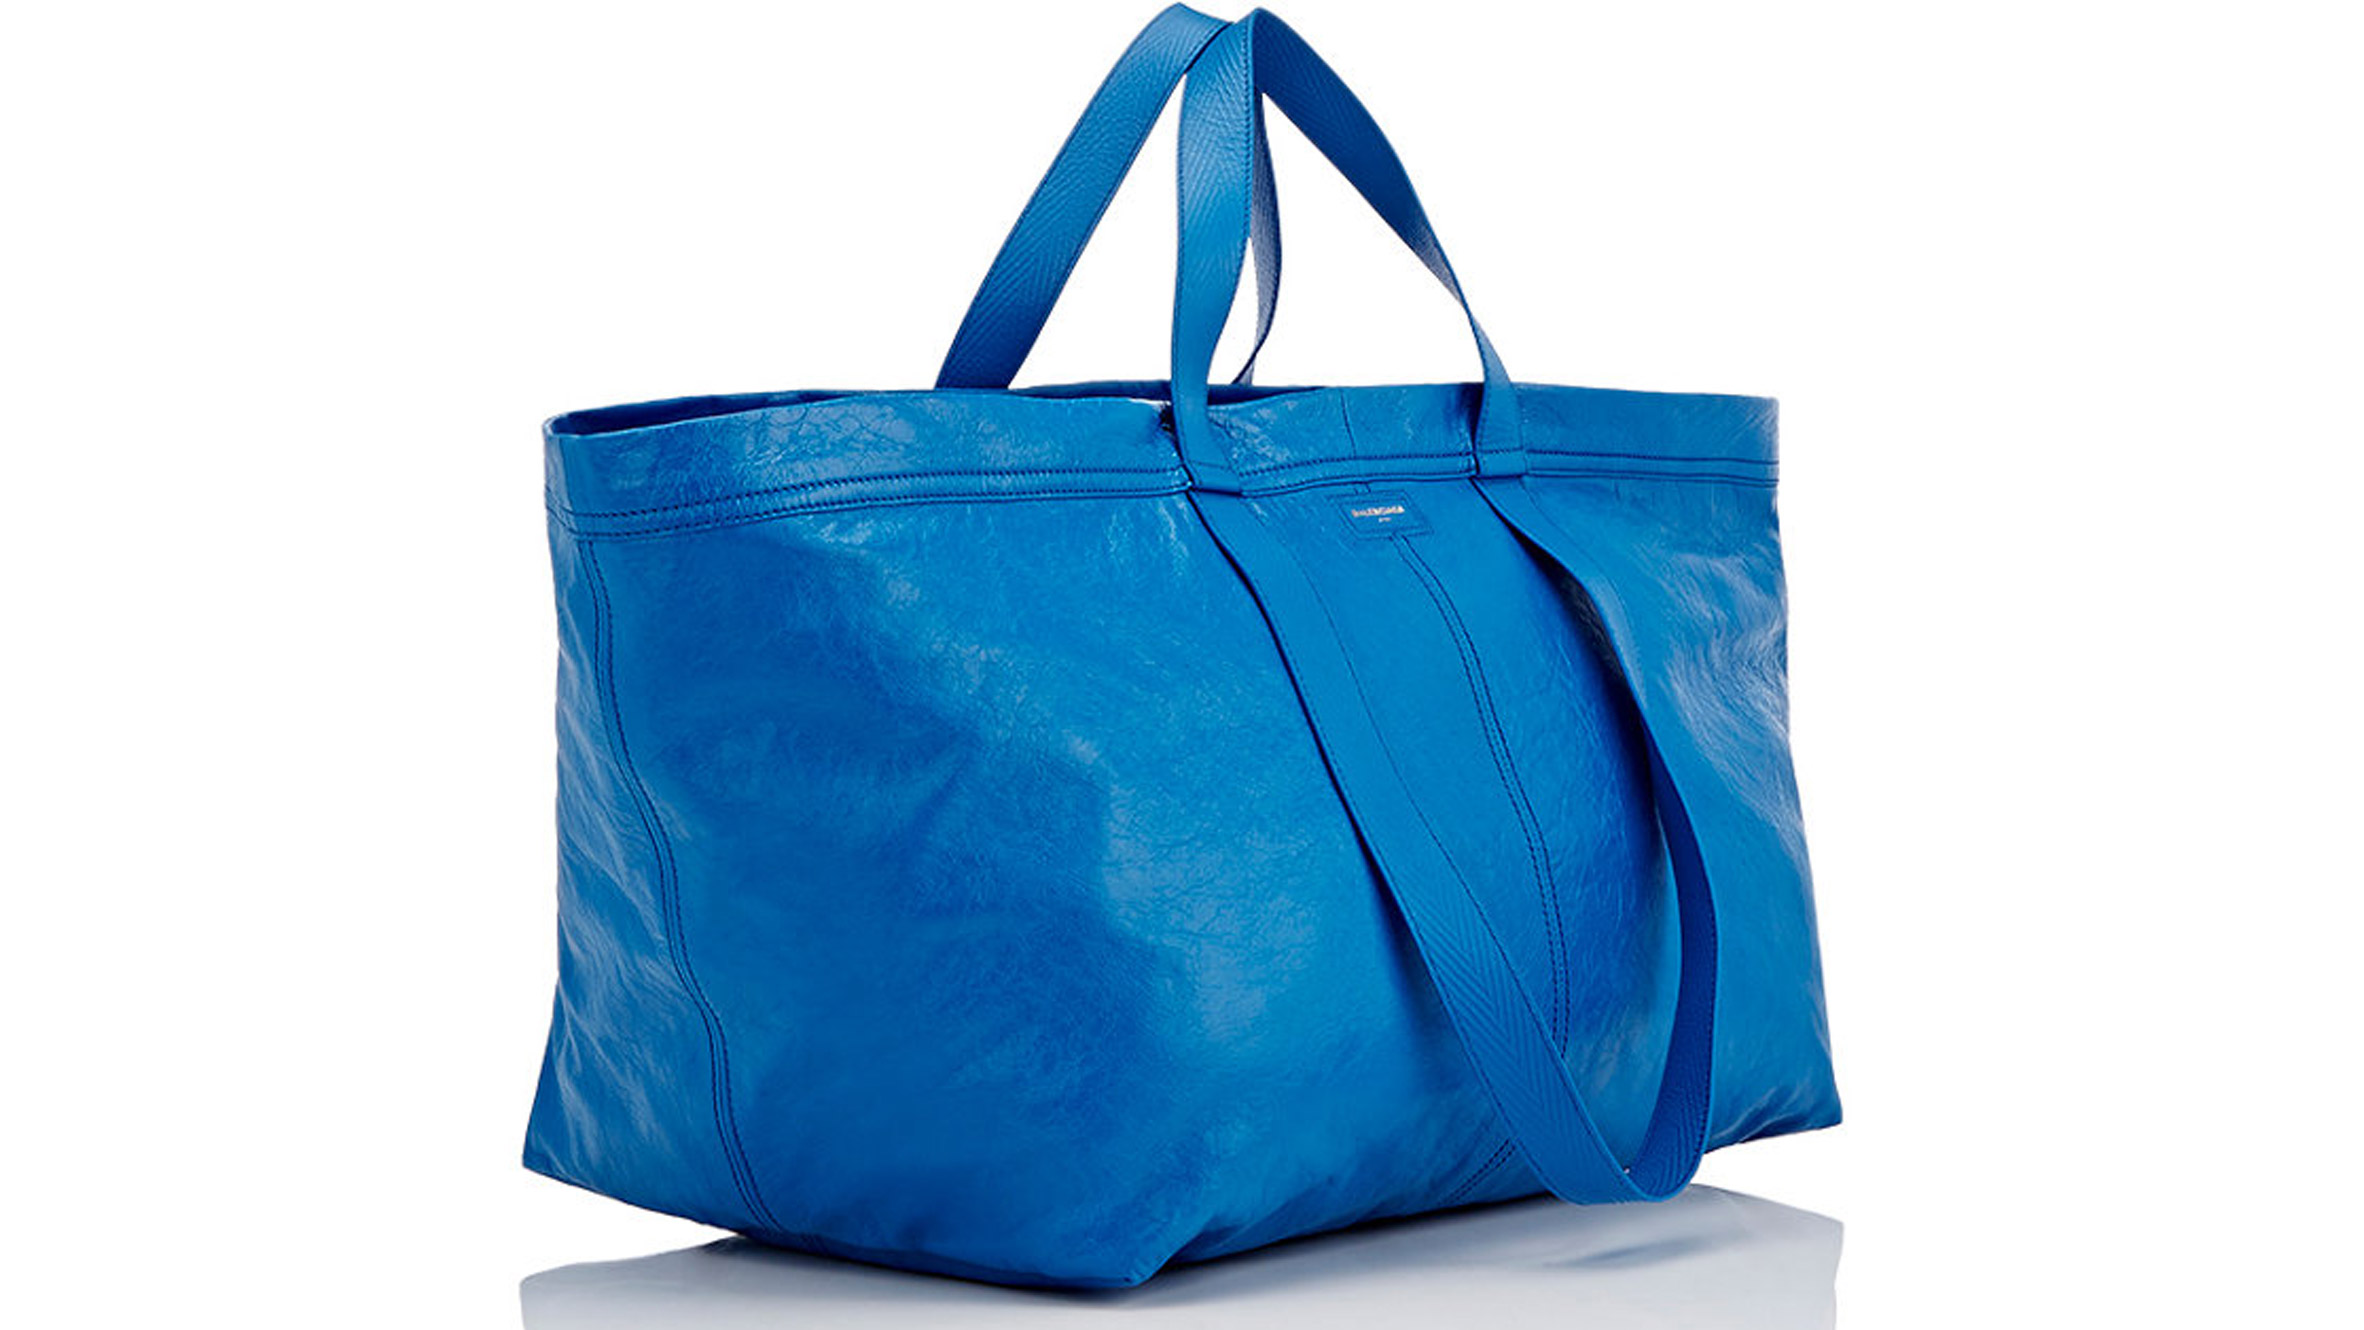 Balenciaga sells £1,705 version of IKEA's blue tote bag worth 40p